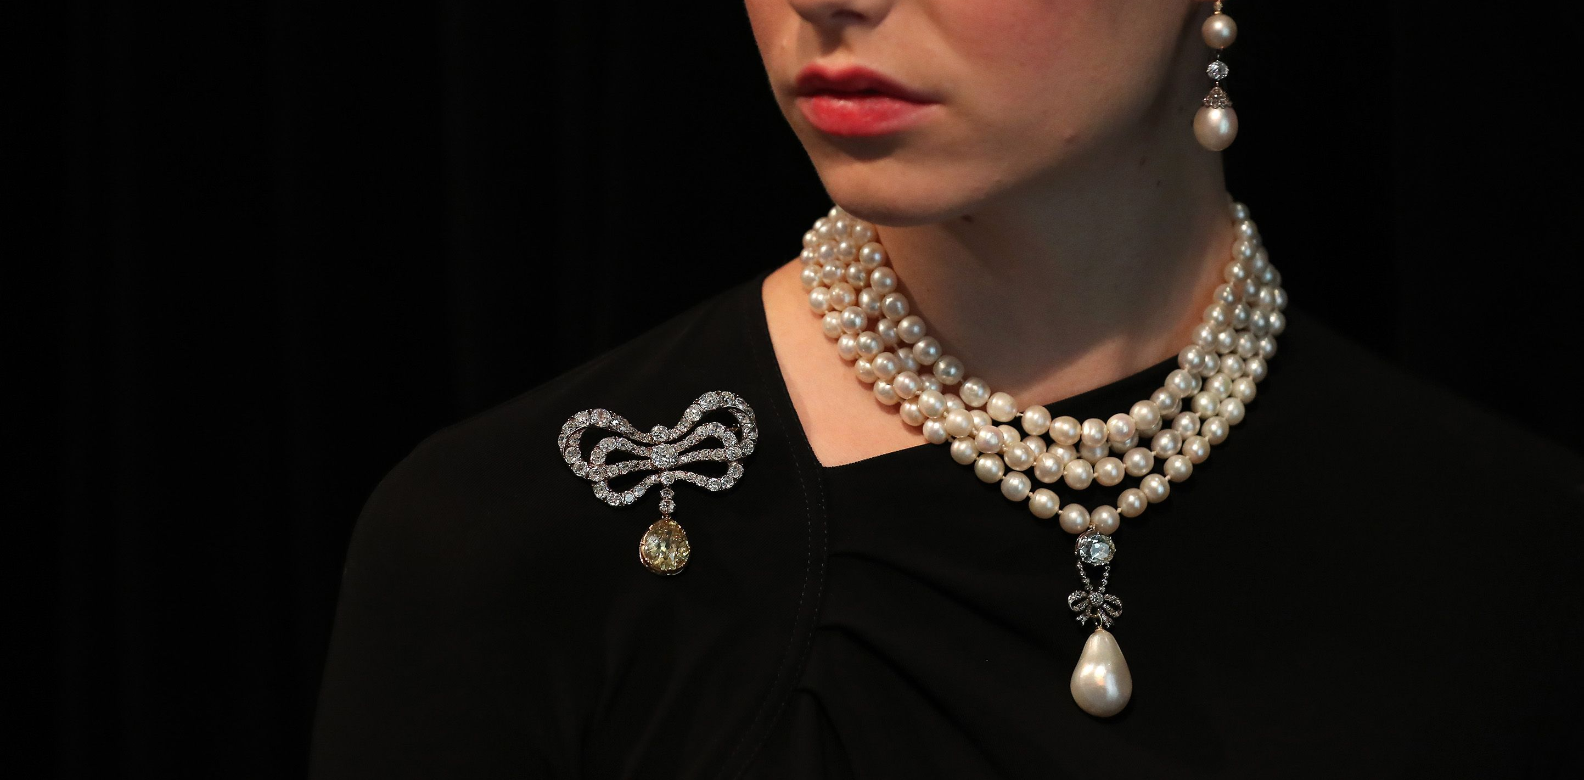 A model wears The 'Queen Marie Antoinette's Pearl' with an estimated value of £767,500-£1,534,000 GBP (872,500-1,743,000 Euros, $1,000,000-2,000,000 USD) on Queen Marie Antoinette's pearl and diamond necklace, together with a Queen Marie Antoinette's diamond brooch (L) during a photocall for the sale of 'Royal Jewels from the Bourbon Parma Family' at Sotheby's auction house in London on October 19, 2018. One of the most important royal jewellery collections ever to come to auction comes for sale at Sotheby'